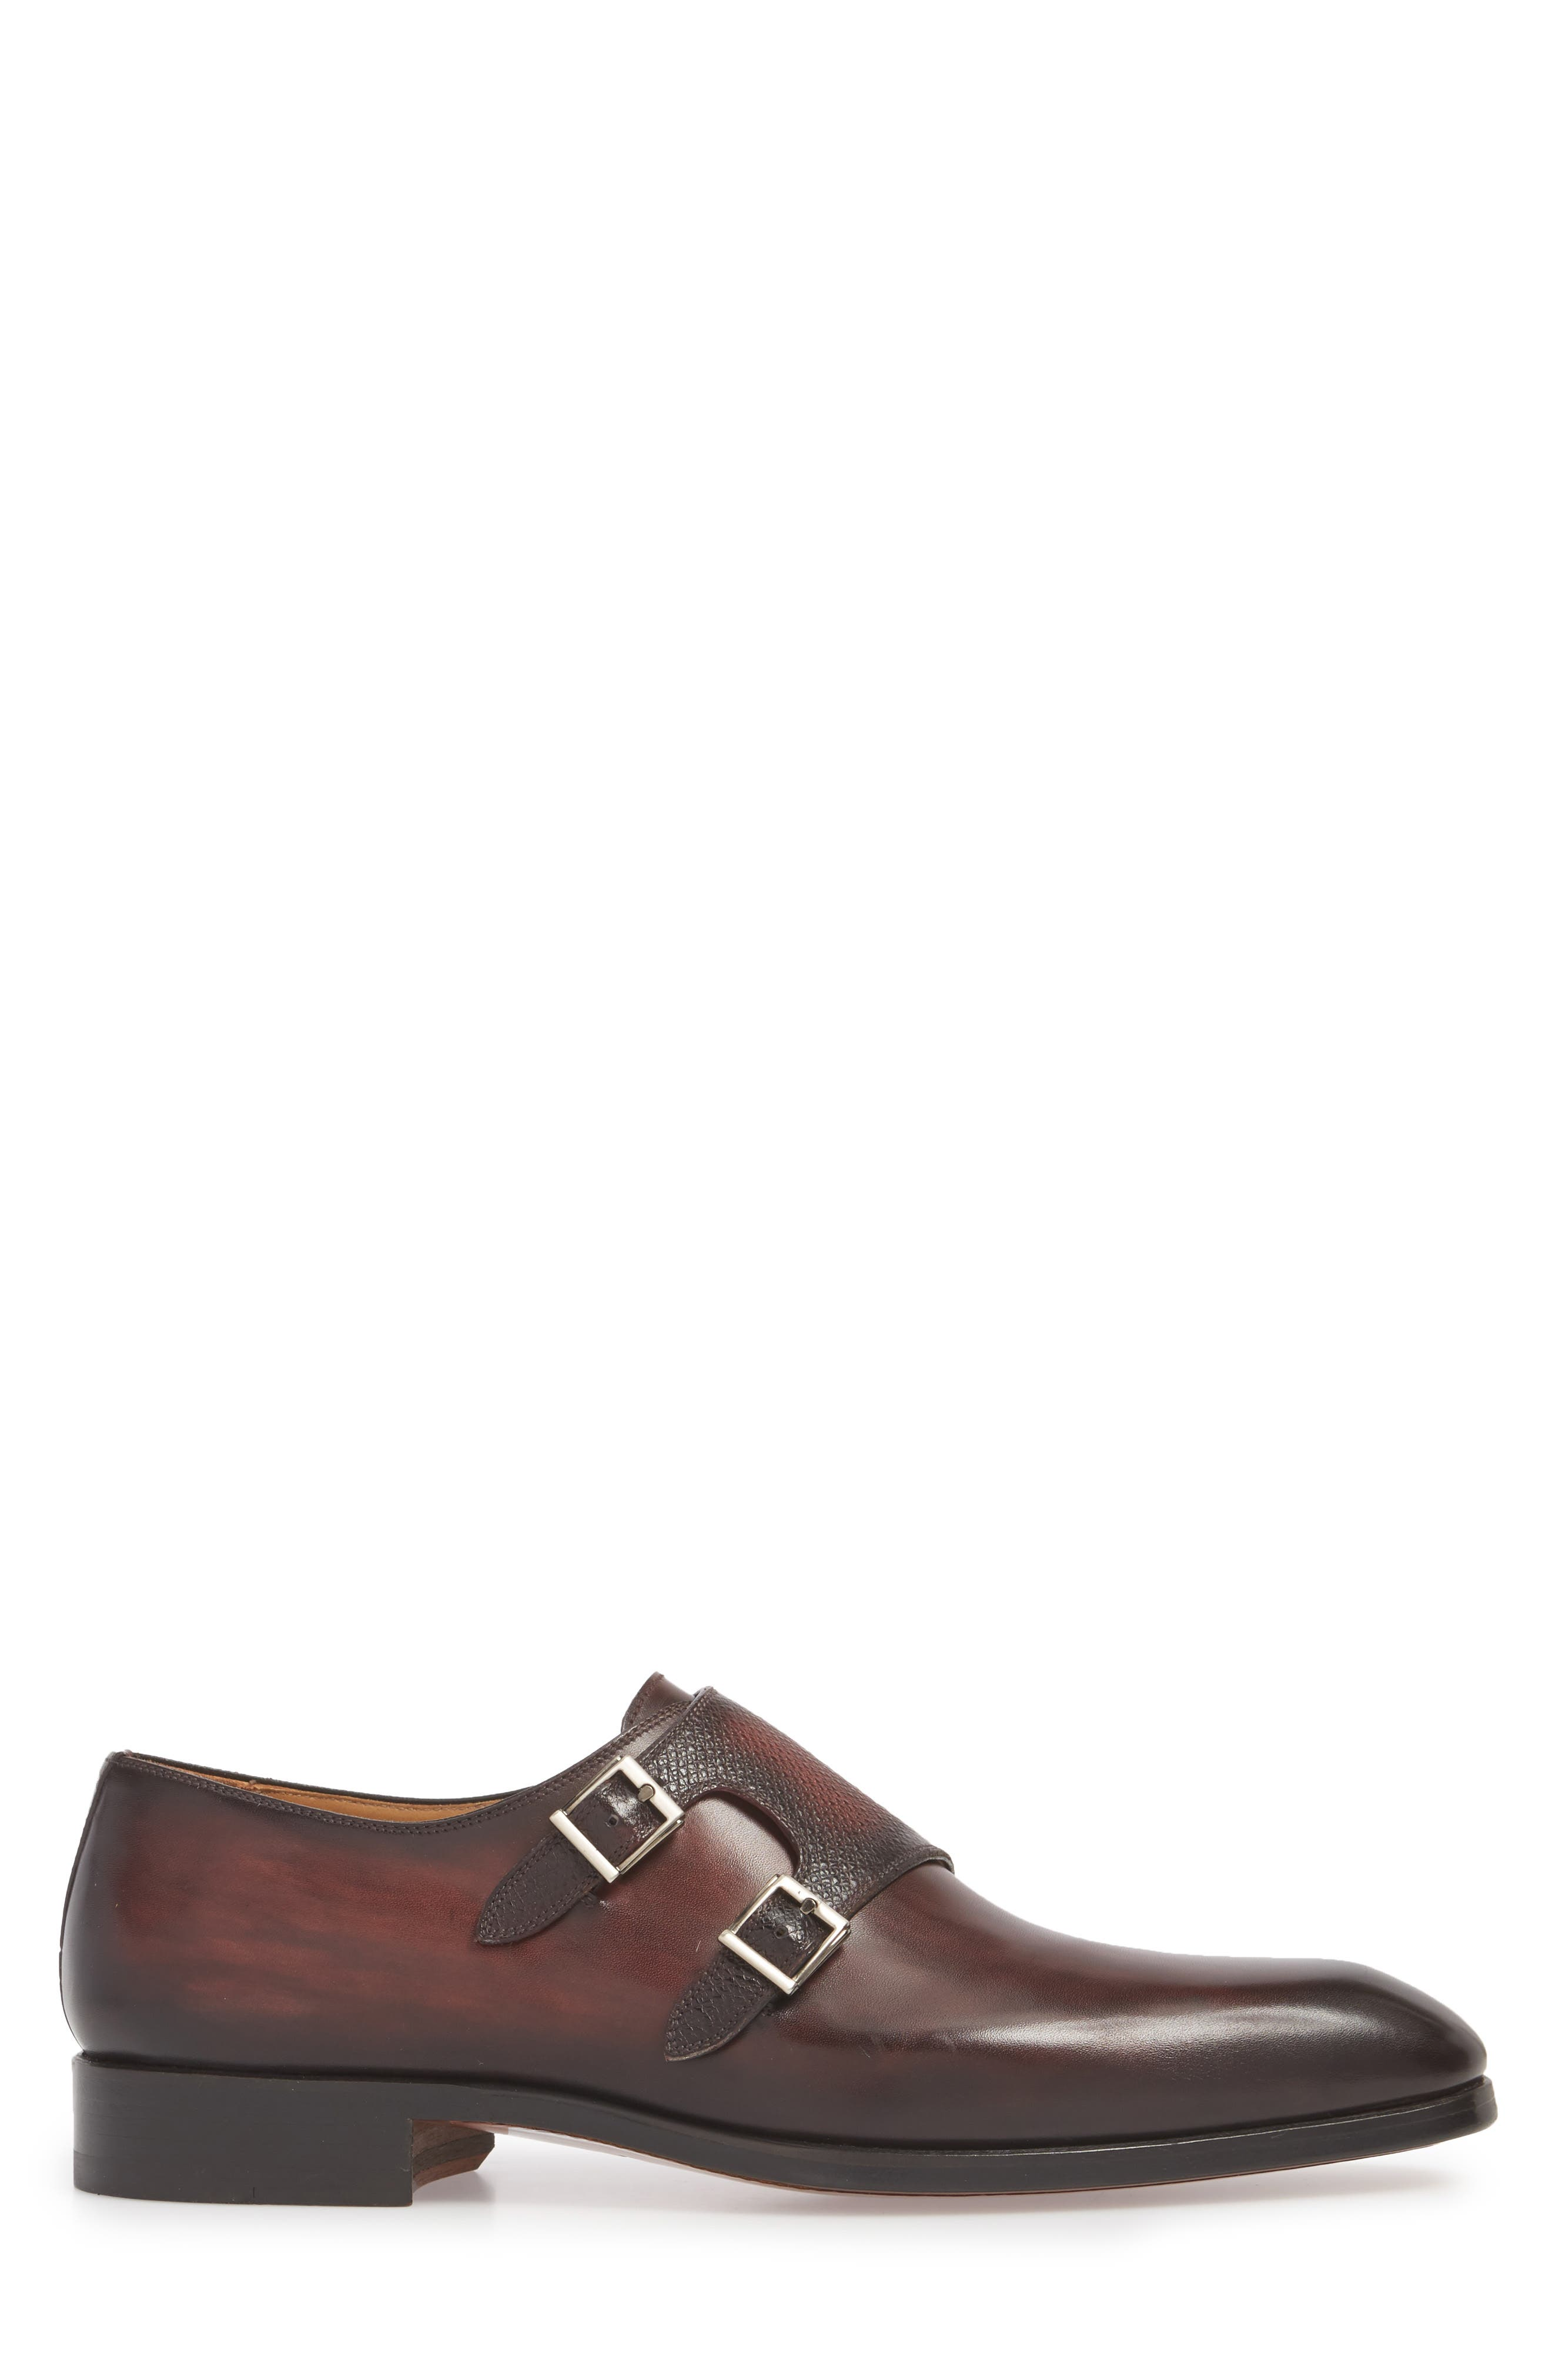 Arlo Pebbled Monk Shoe,                             Alternate thumbnail 3, color,                             BURGUNDY LEATHER